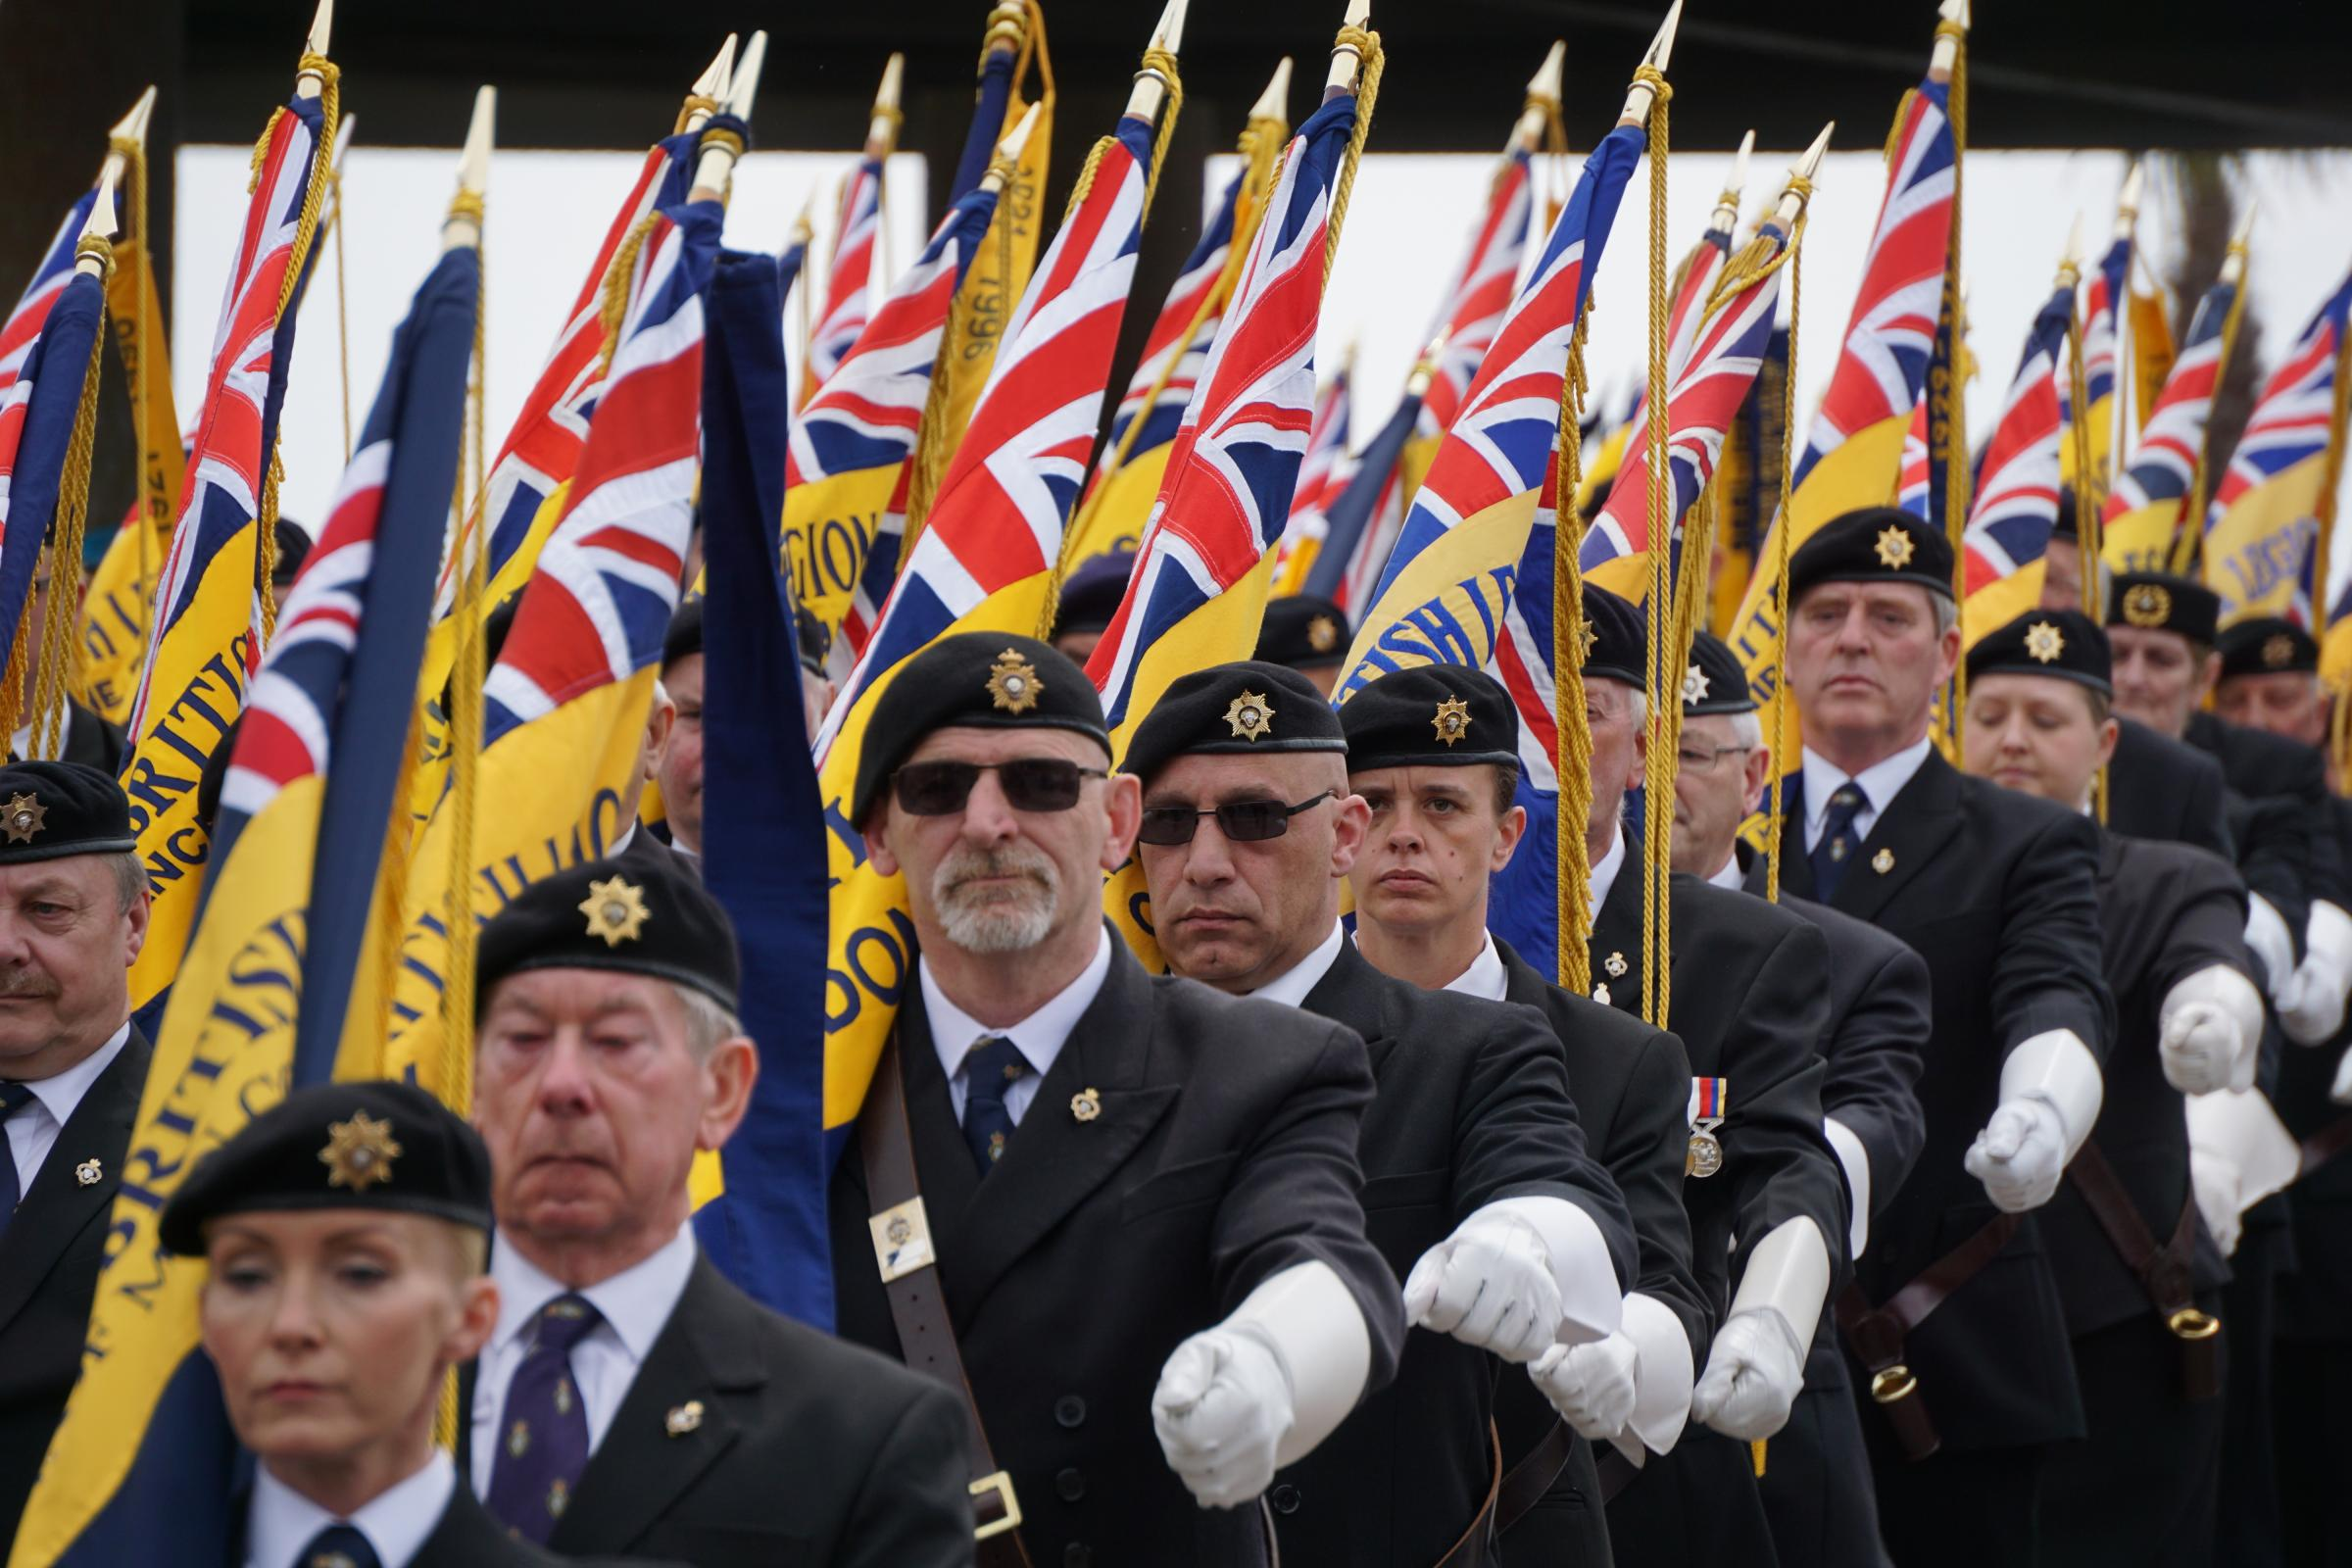 PICTURES: The Royal British Legion's Bournemouth parade on Sunday